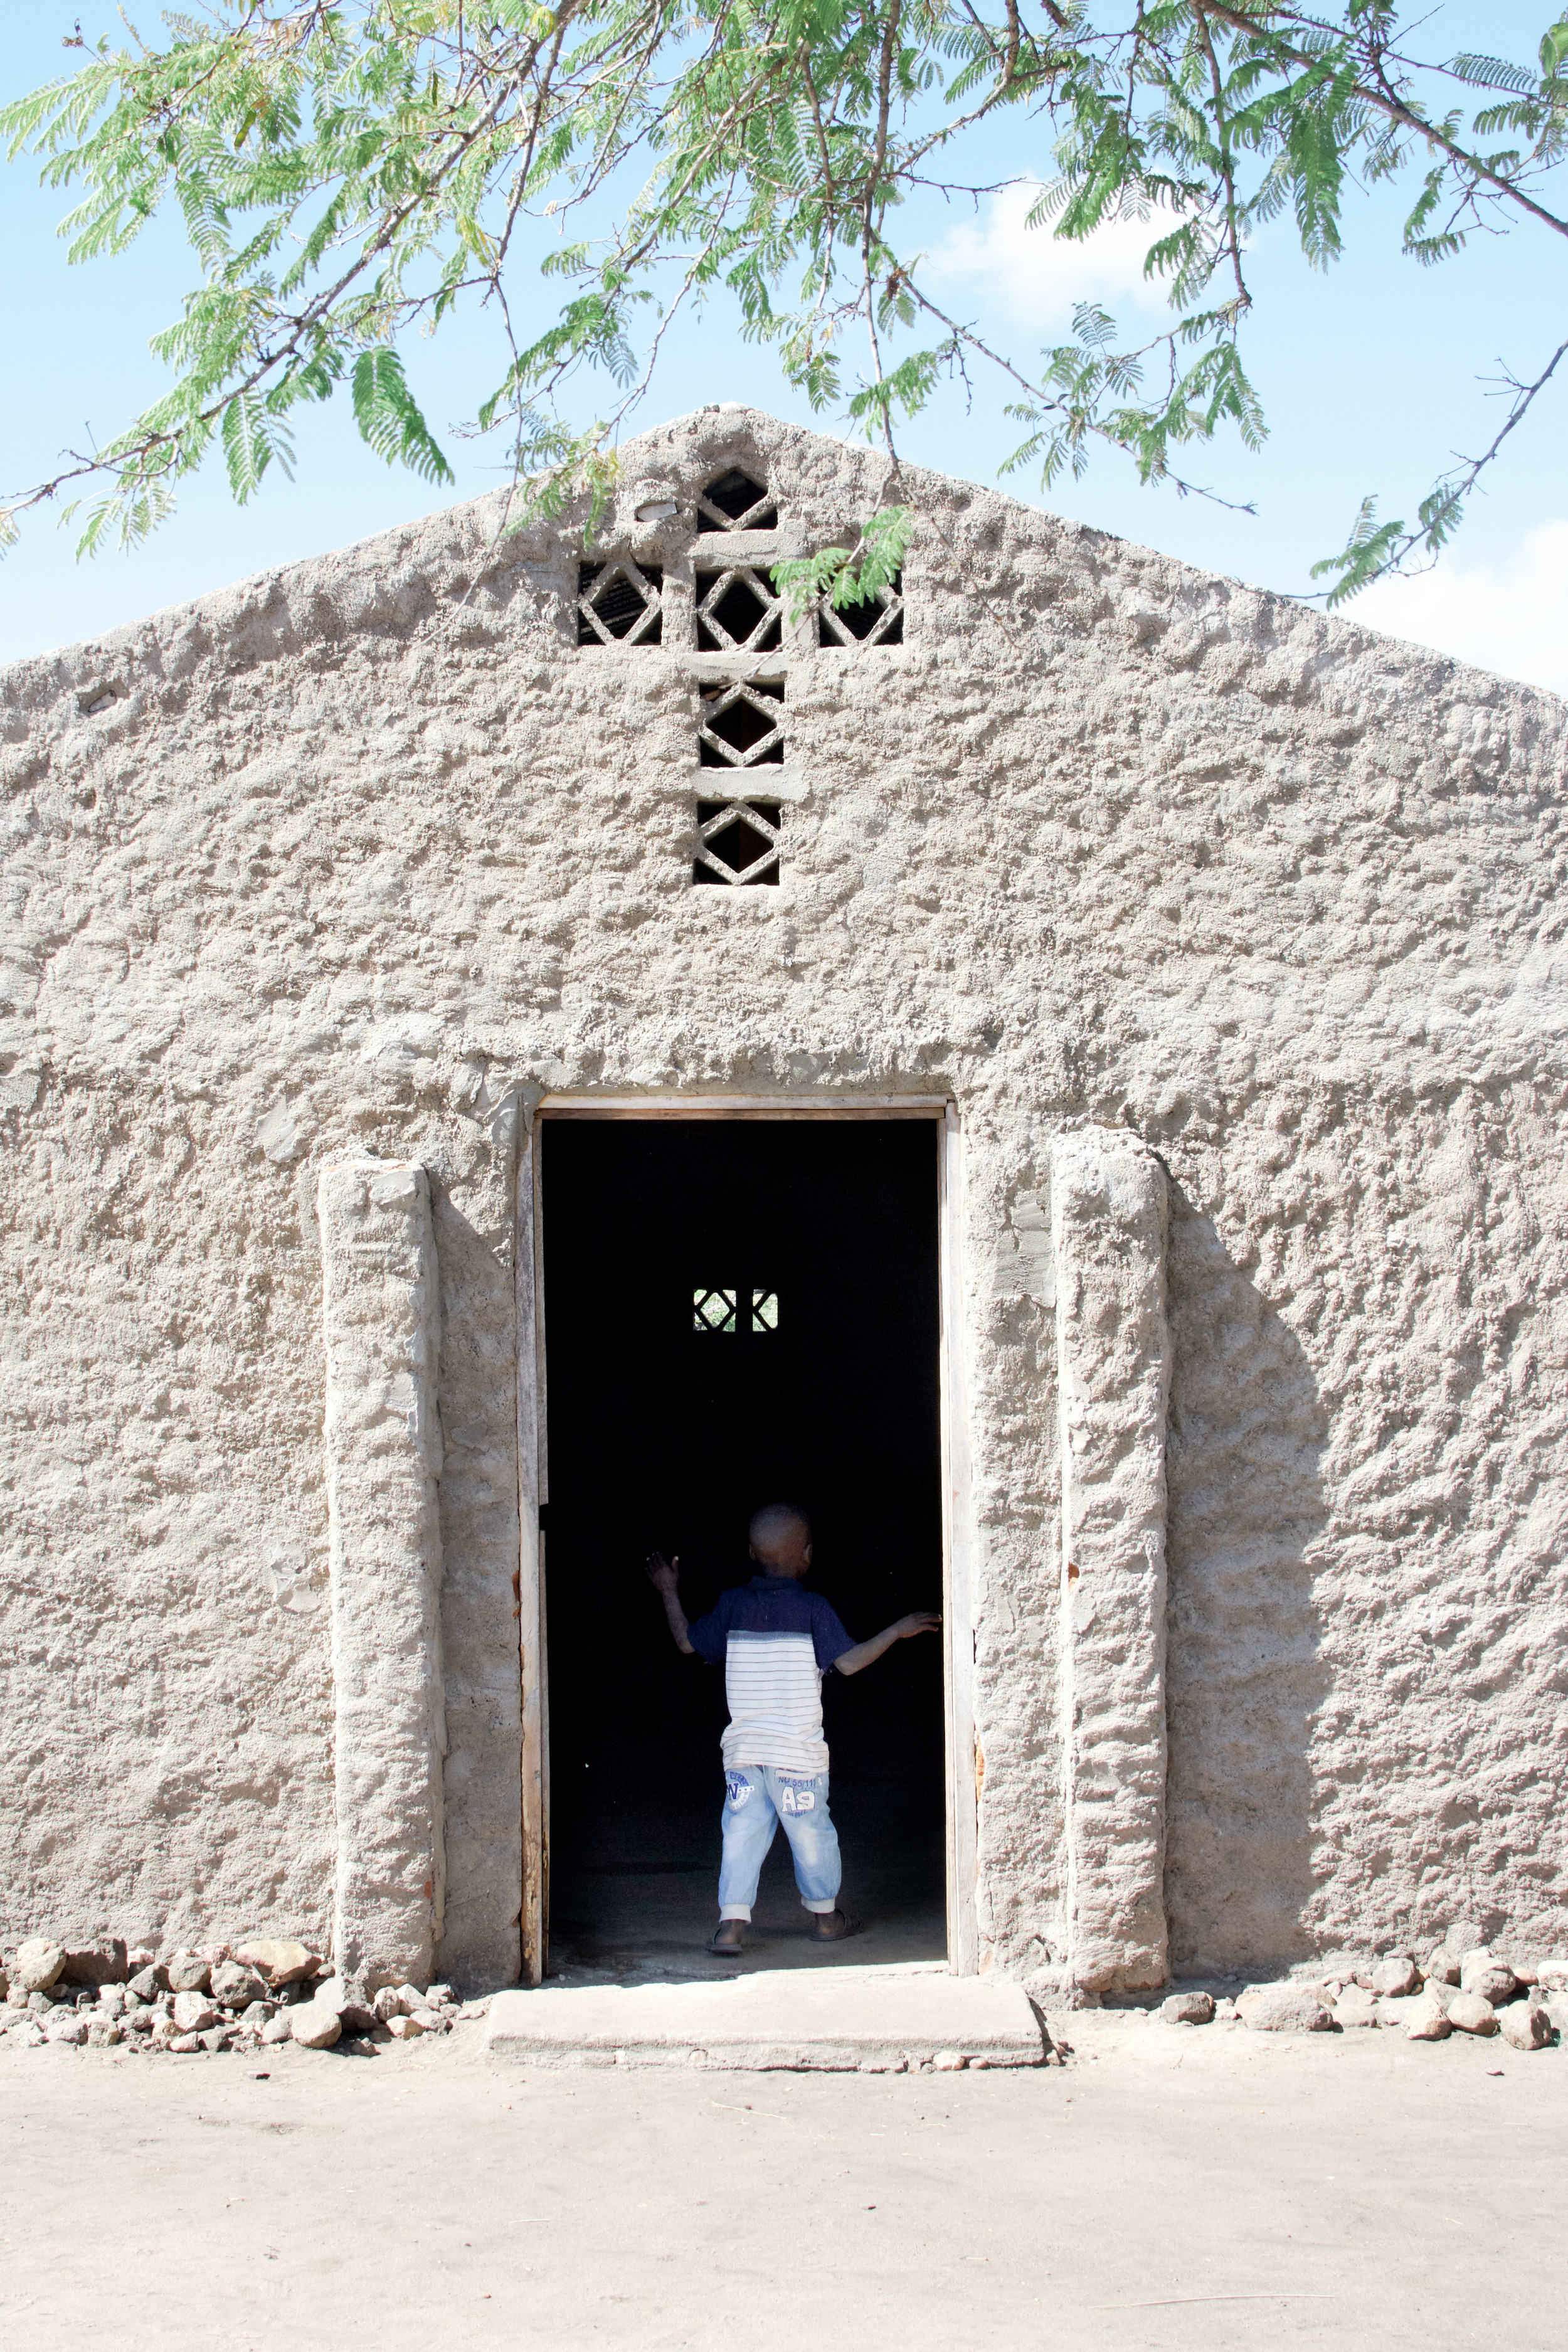 A young boy looks into the church building of St. Matthews Lutheran Church in Kapesseni.